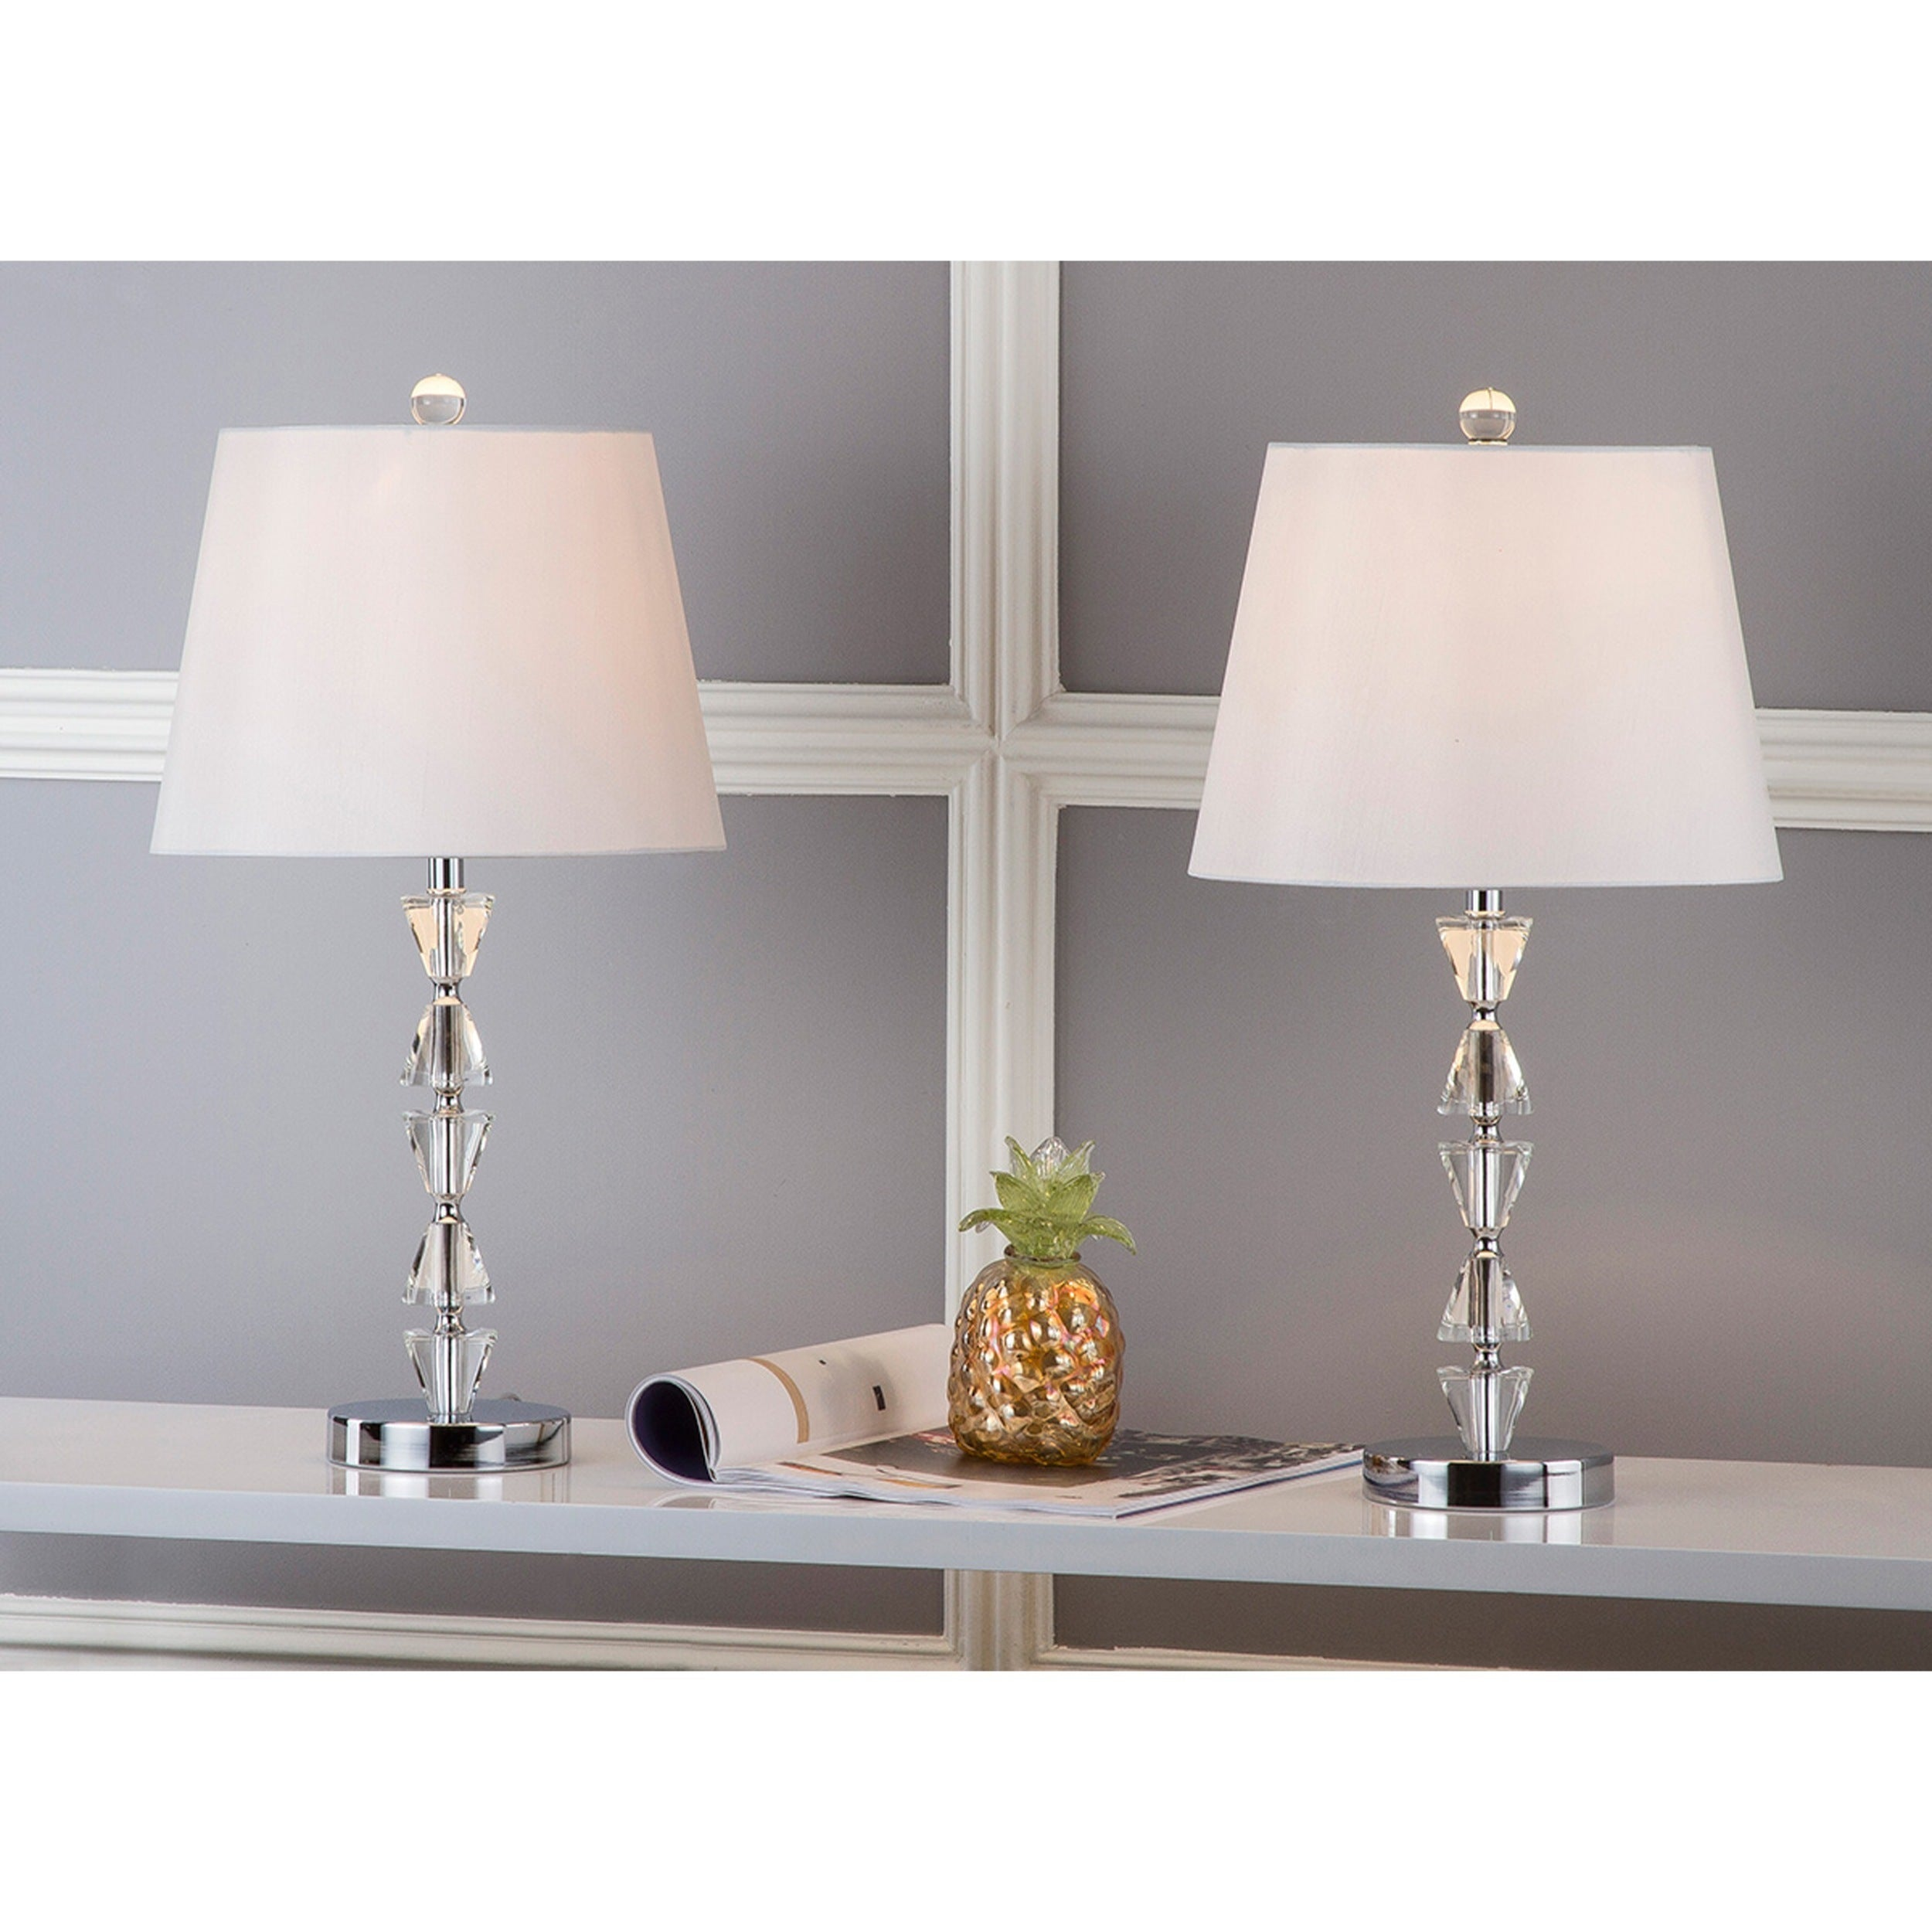 Safavieh Lighting 21 Inch Deco White Shade Prisms Crystal Table Lamp Set Of 2 Free Shipping Today 15662348